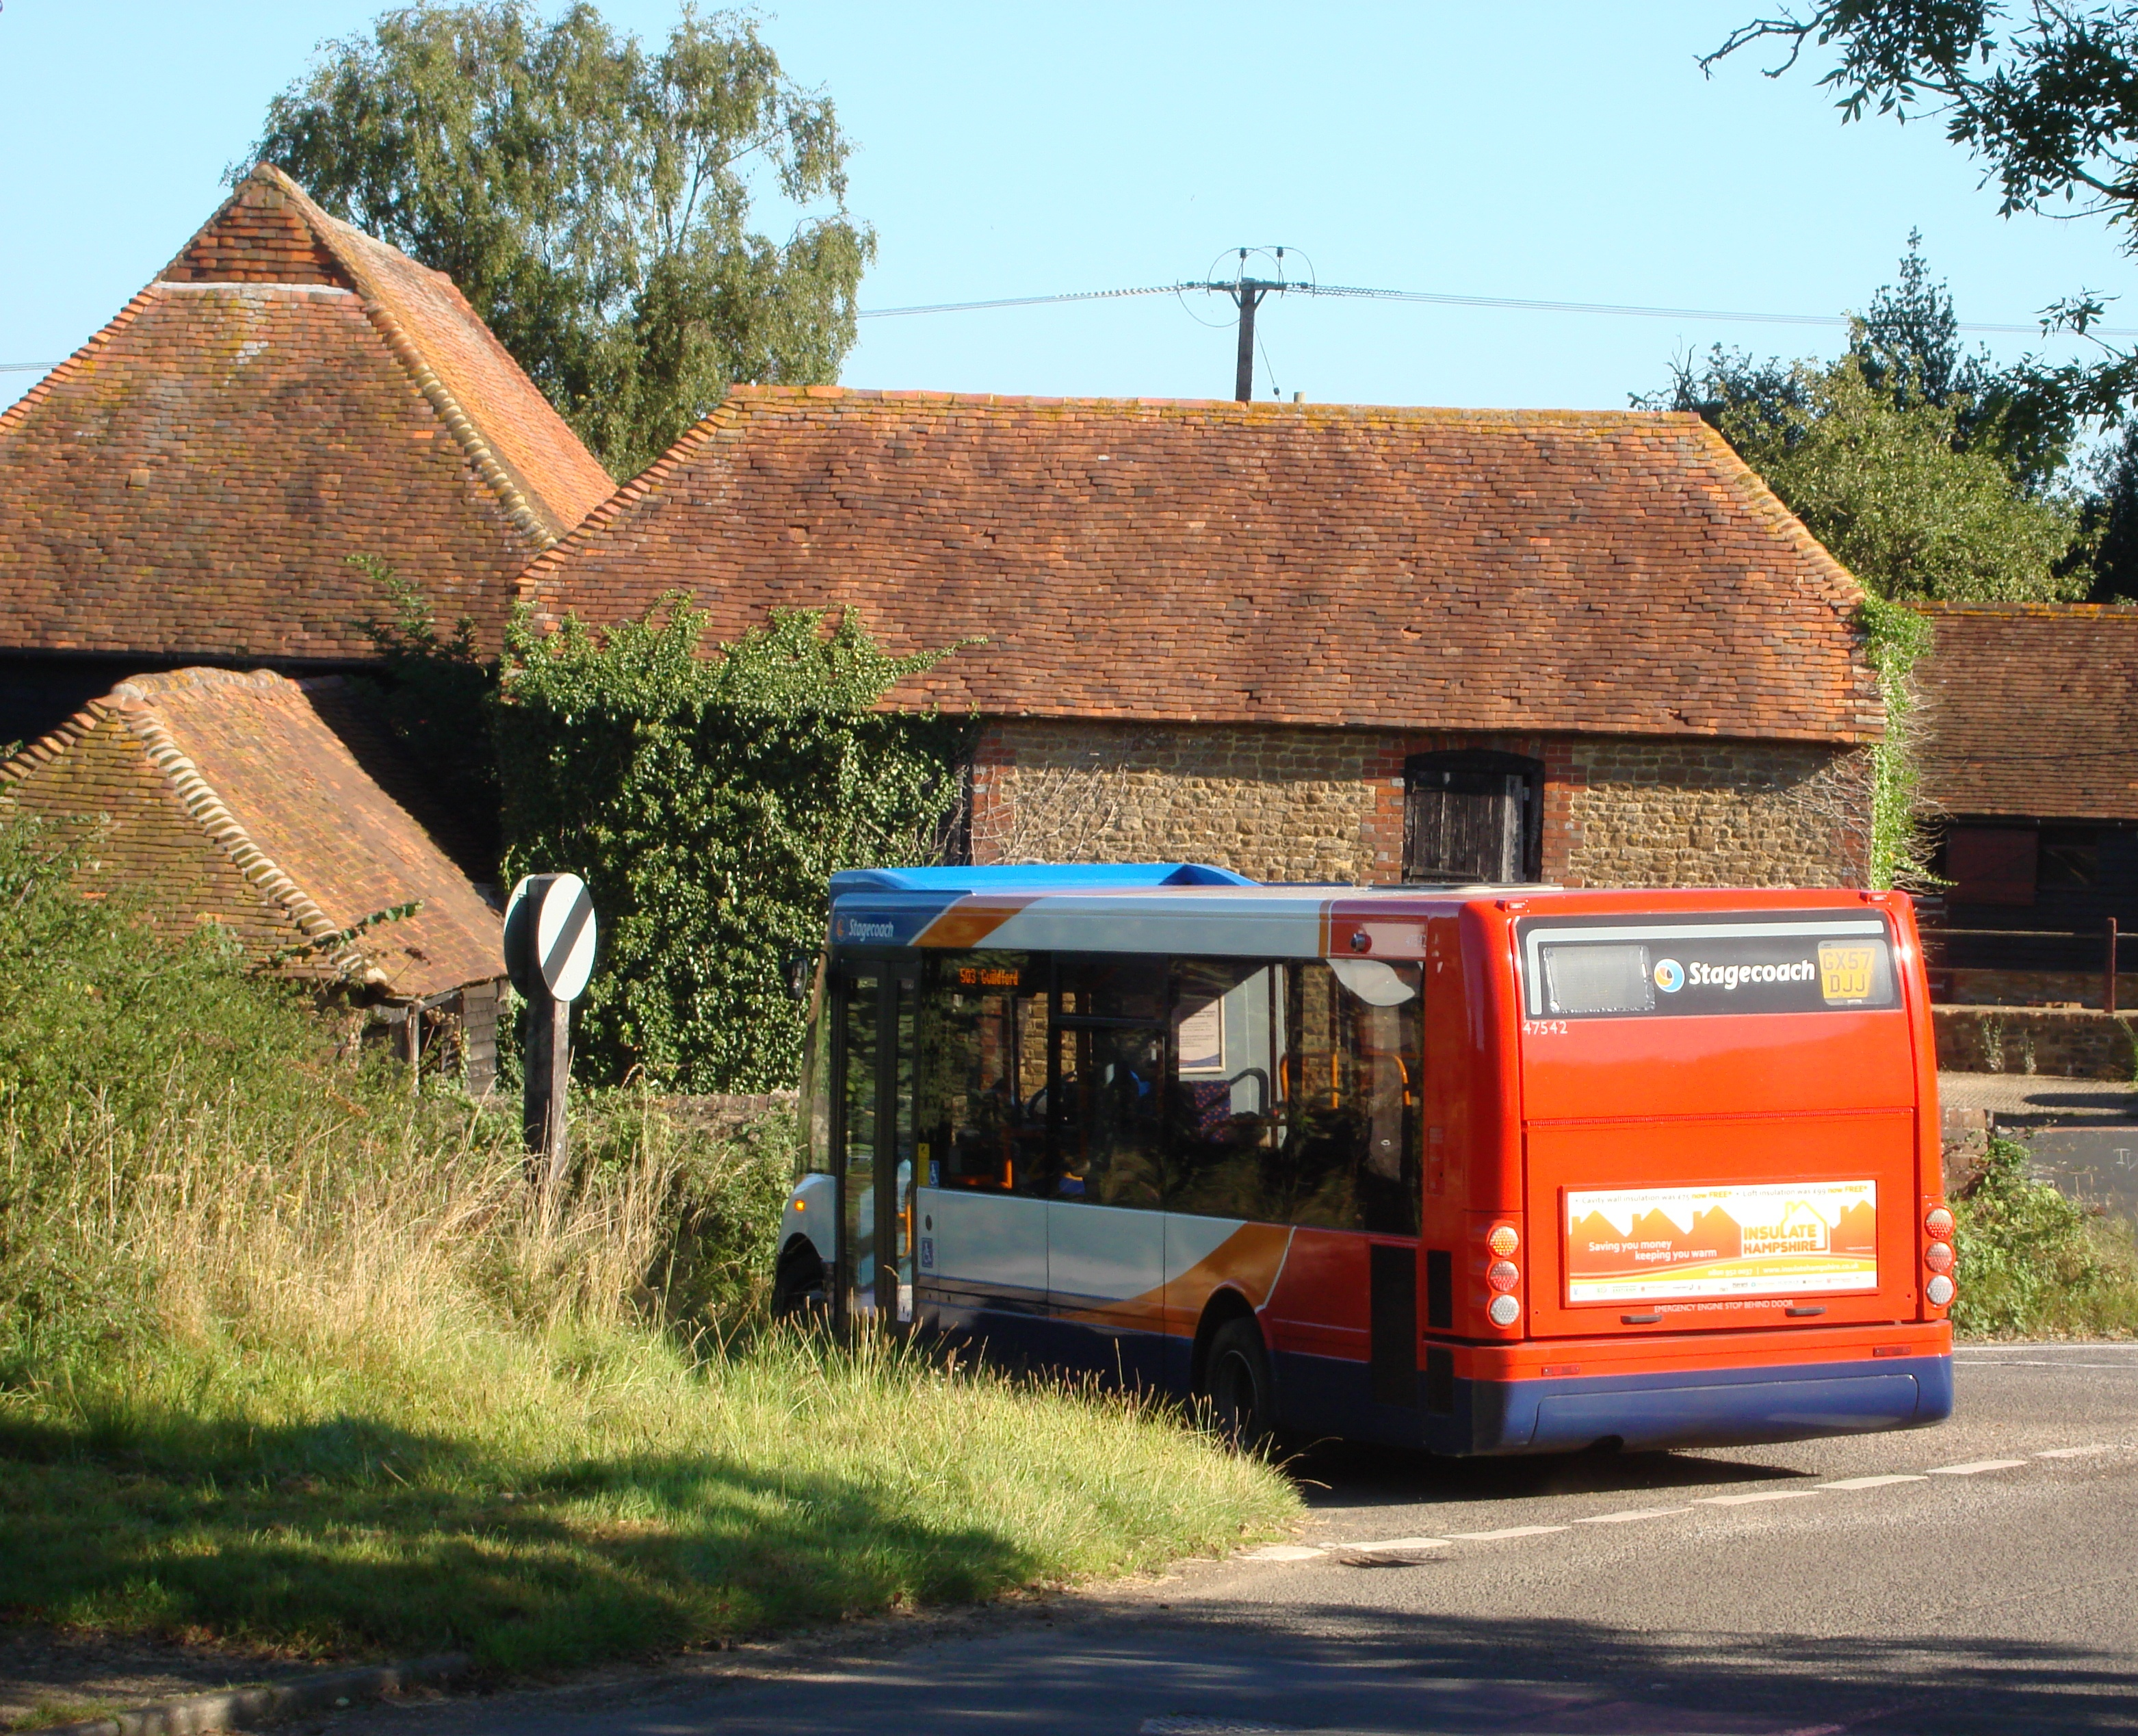 Village bus 5 503 Sept 2012 1 - Copy